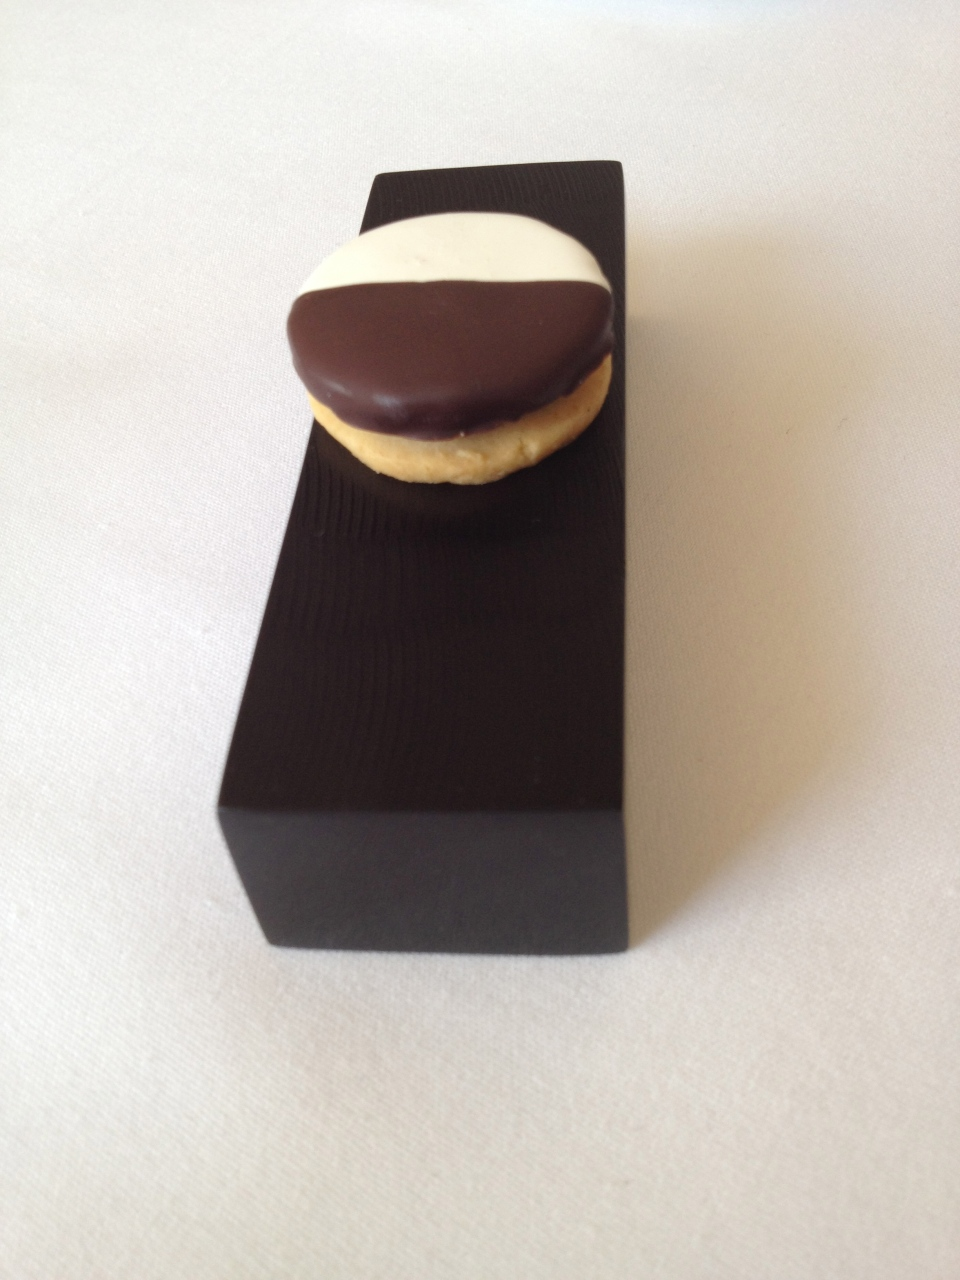 LAST BUT NOT LEAST.... Sweet version of the Black and White Cookie